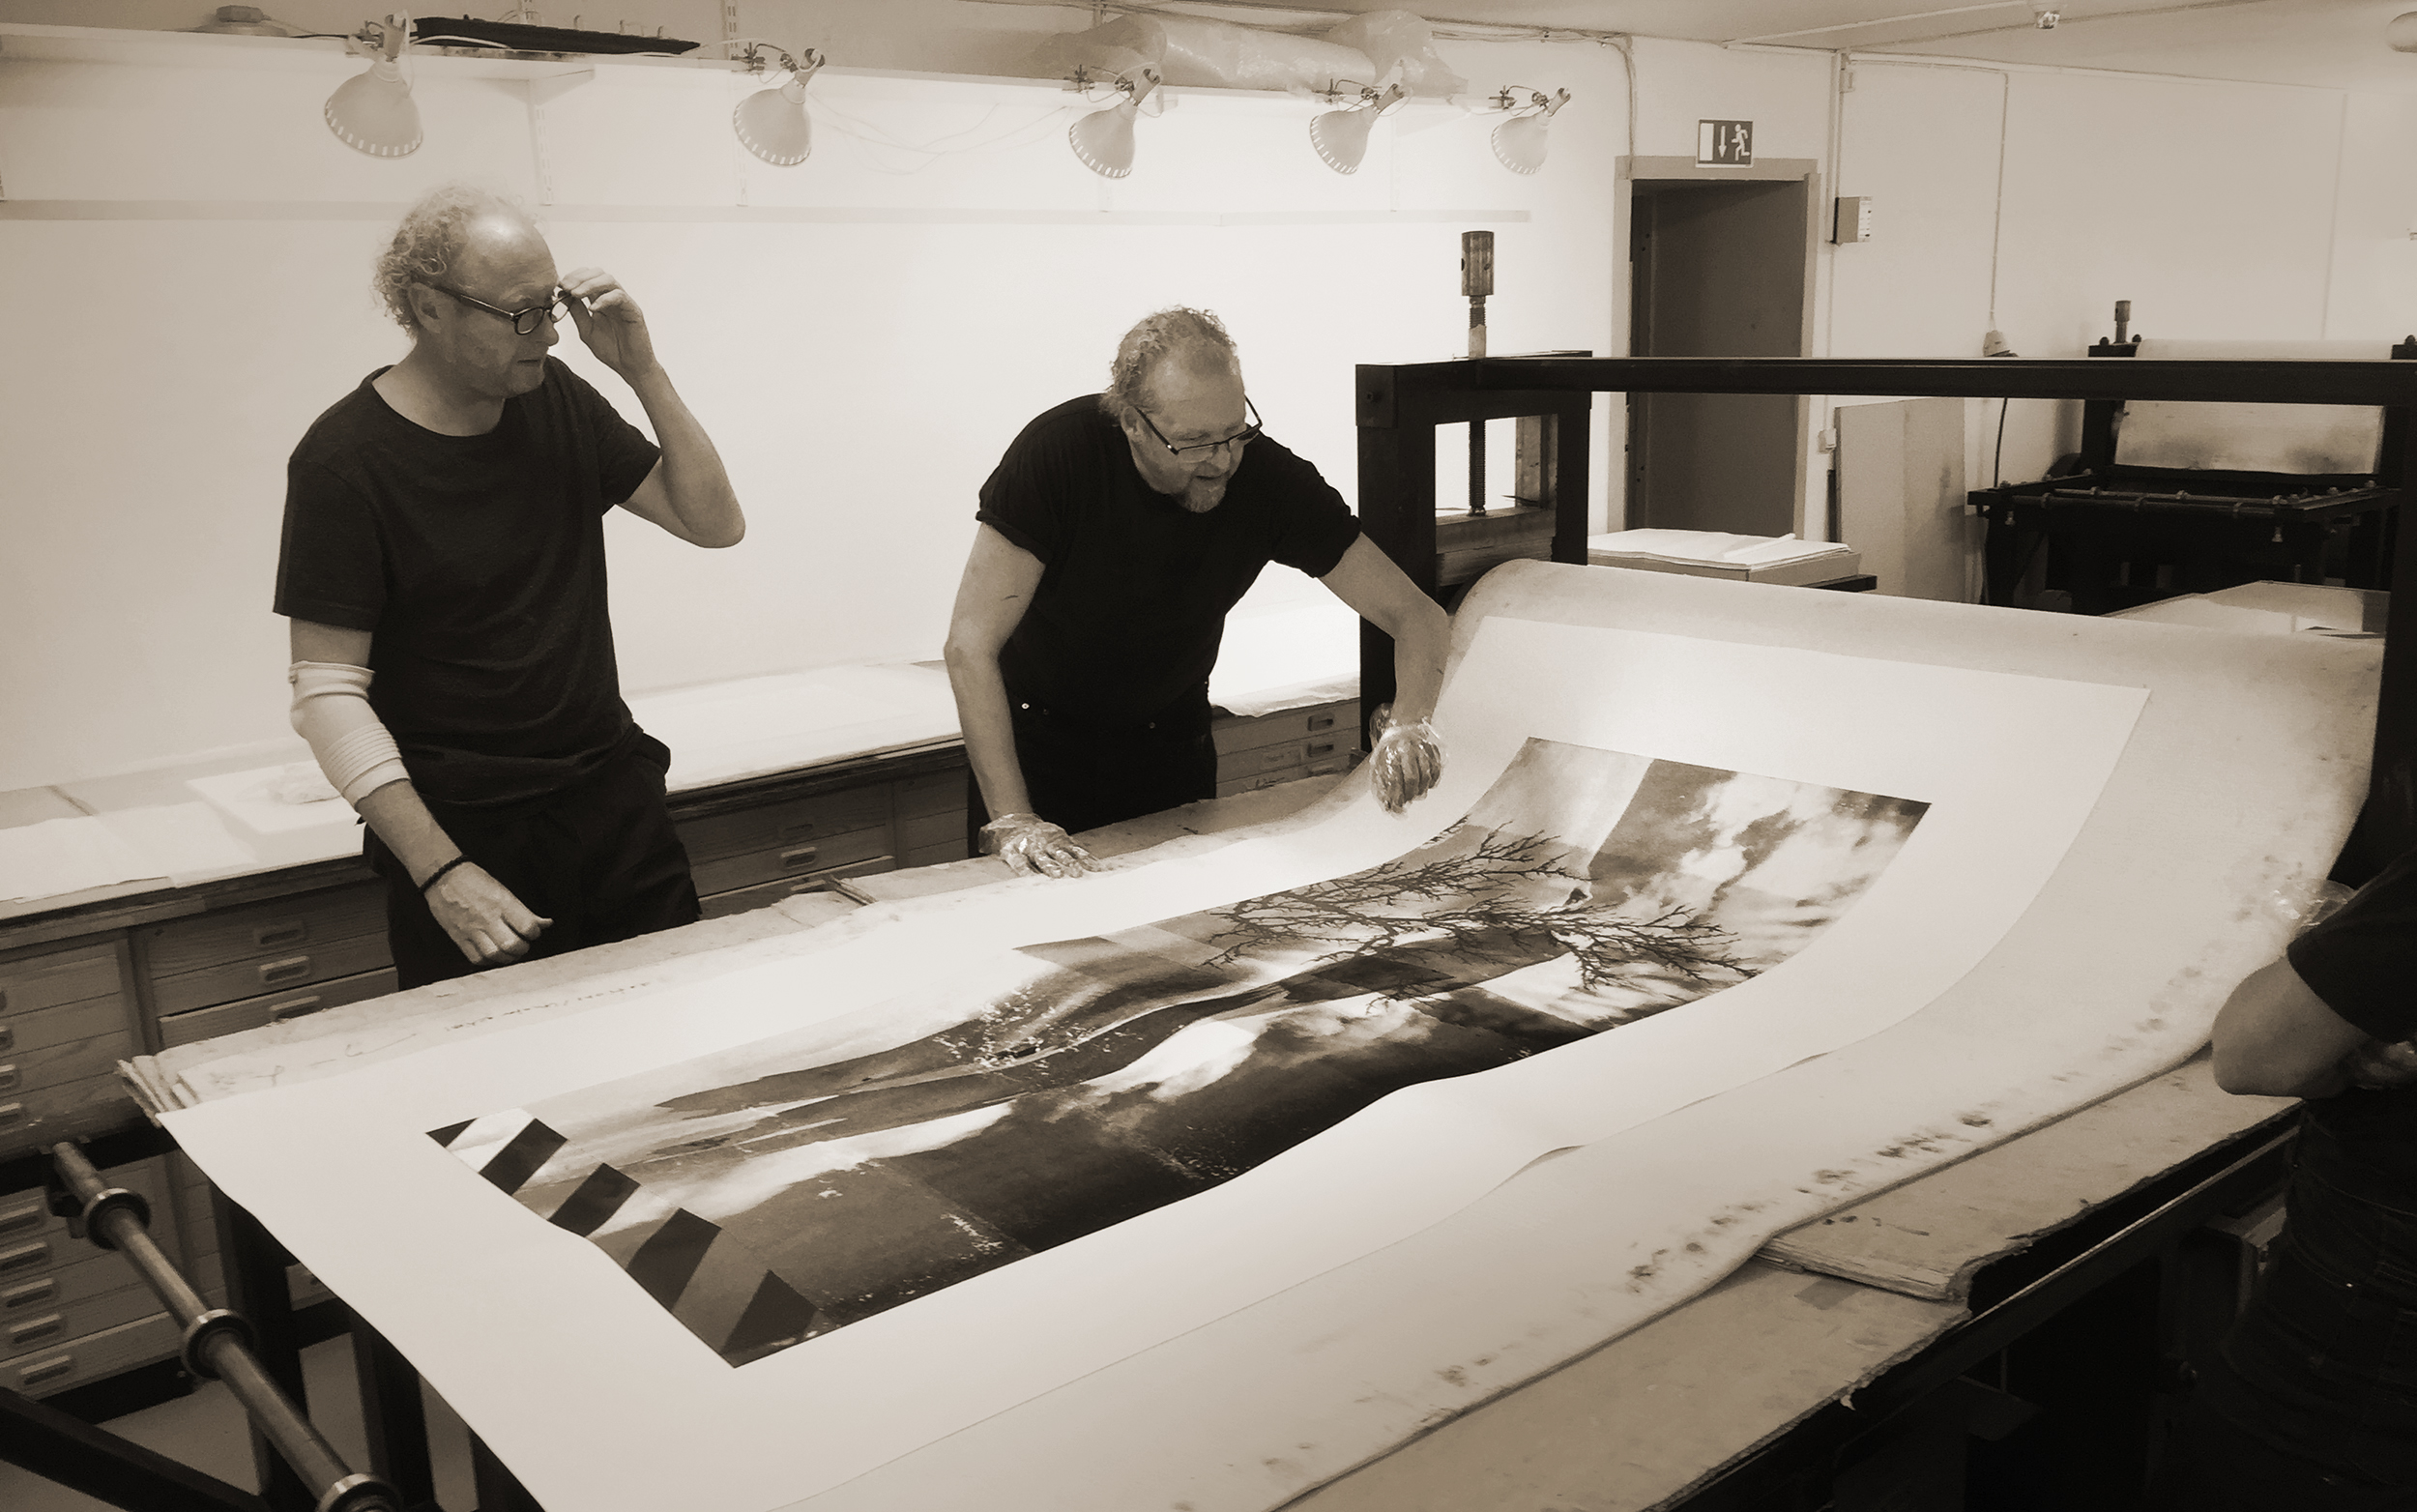 Atelier Ole Larsen / Helsingborg : Working with master printmaker  Ole Larsen  on the large print  Reservoir / Red Birch , a fourcolor polymer print later acquired by  Norges Bank, Norwegian Central Ban k, for their permanent collection. The print was part of the series  Blue Venia  presented by  Kunstverket Galleri  , Oslo in 2015.   PDF: eCatalogue Blue Venia / Kunstverket / 2015